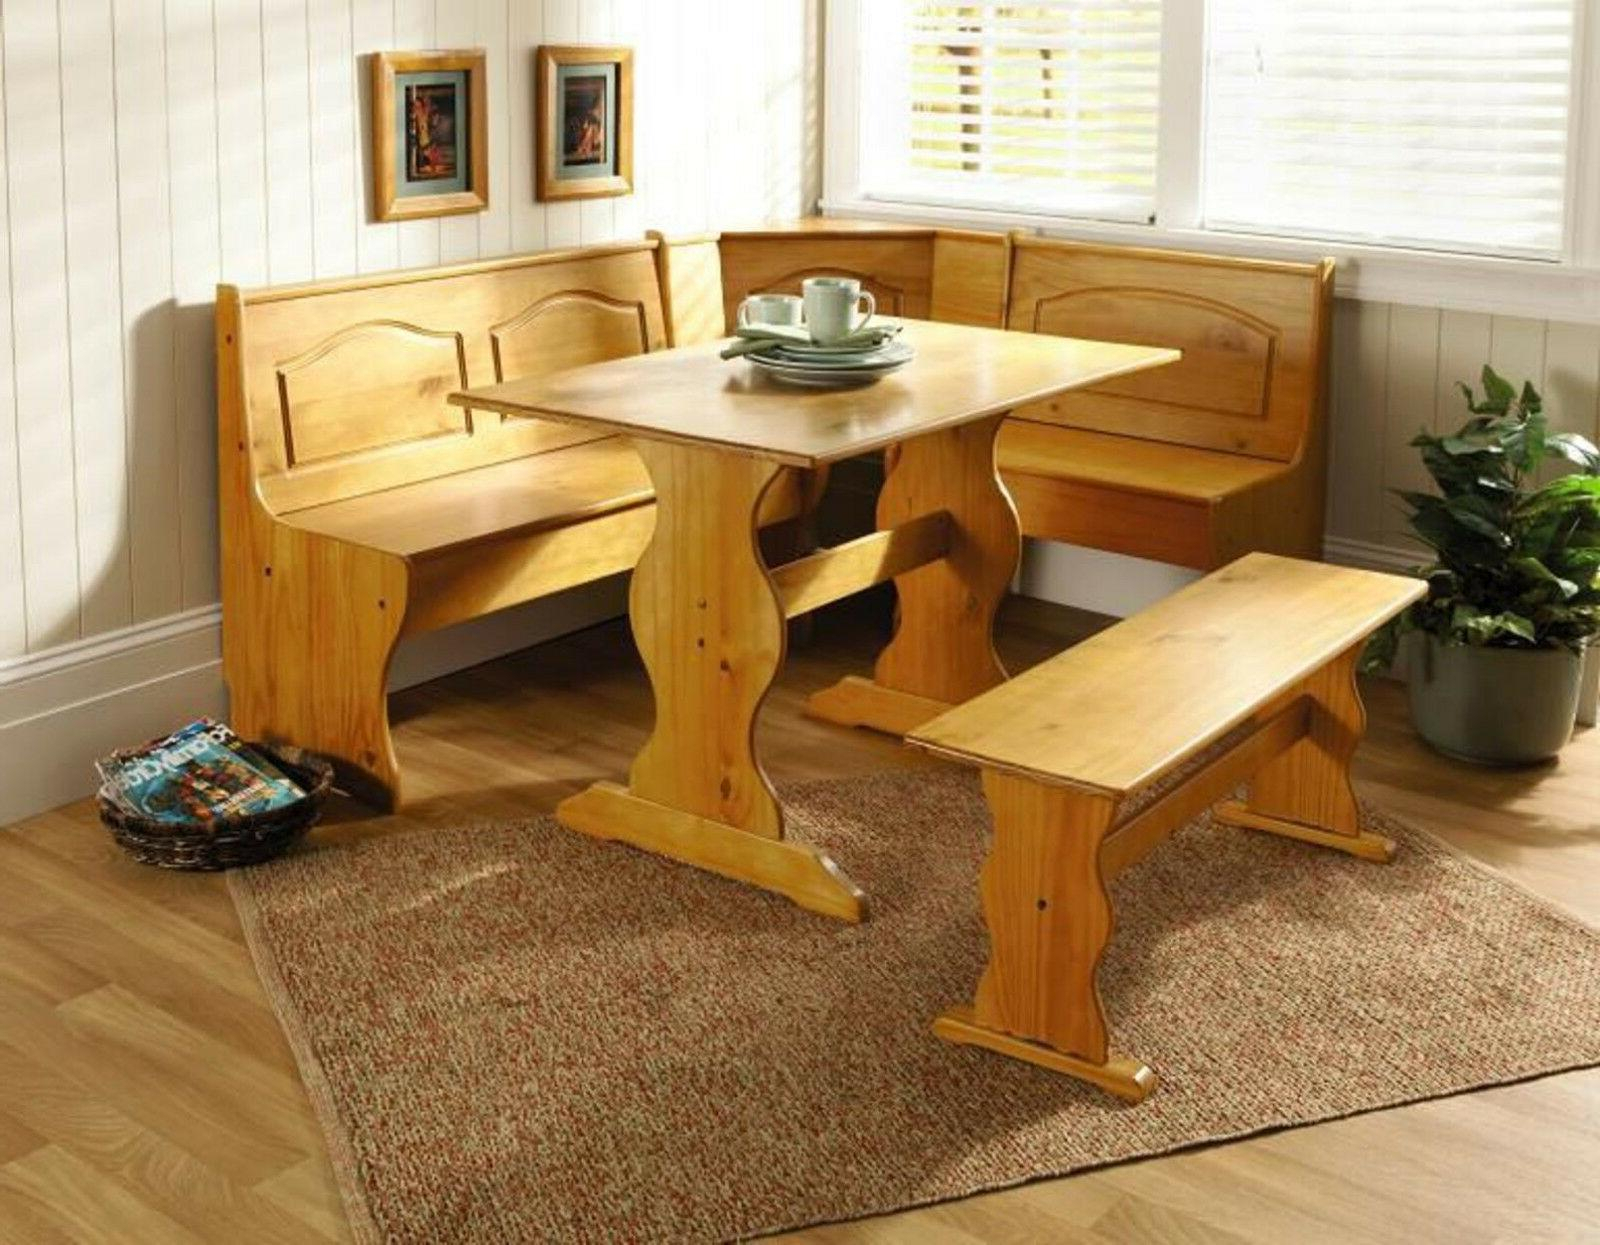 Kitchen Nook Solid Wood Corner Dining Breakfast Set Pertaining To Most Recent Ligon 3 Piece Breakfast Nook Dining Sets (Image 12 of 20)